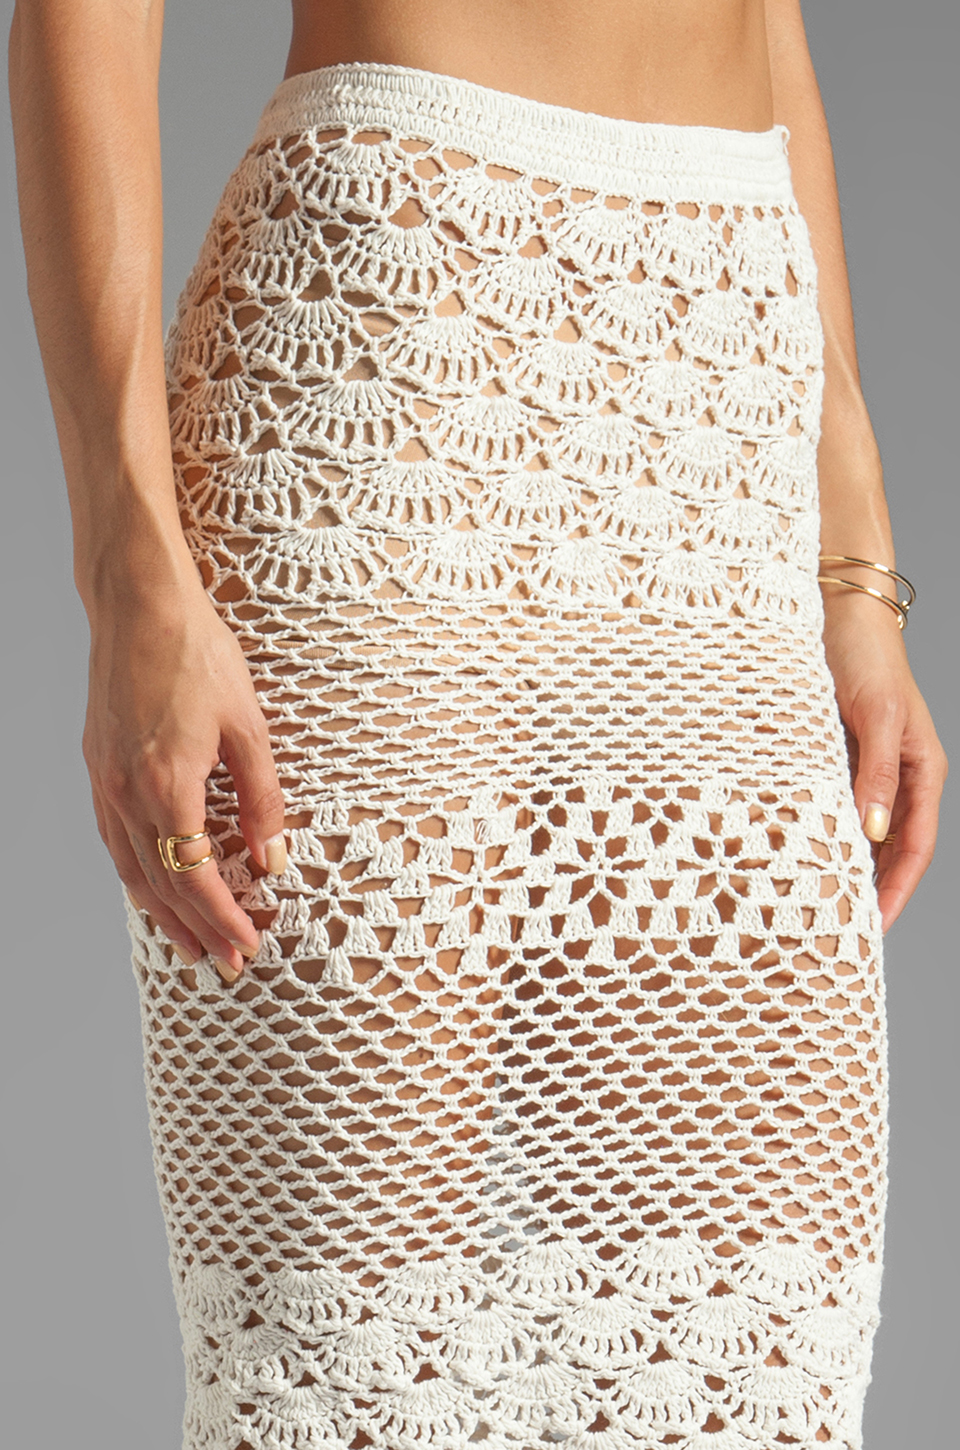 ... & The Gypsy Collective Coconut Crochet Skirt in Off White REVOLVE